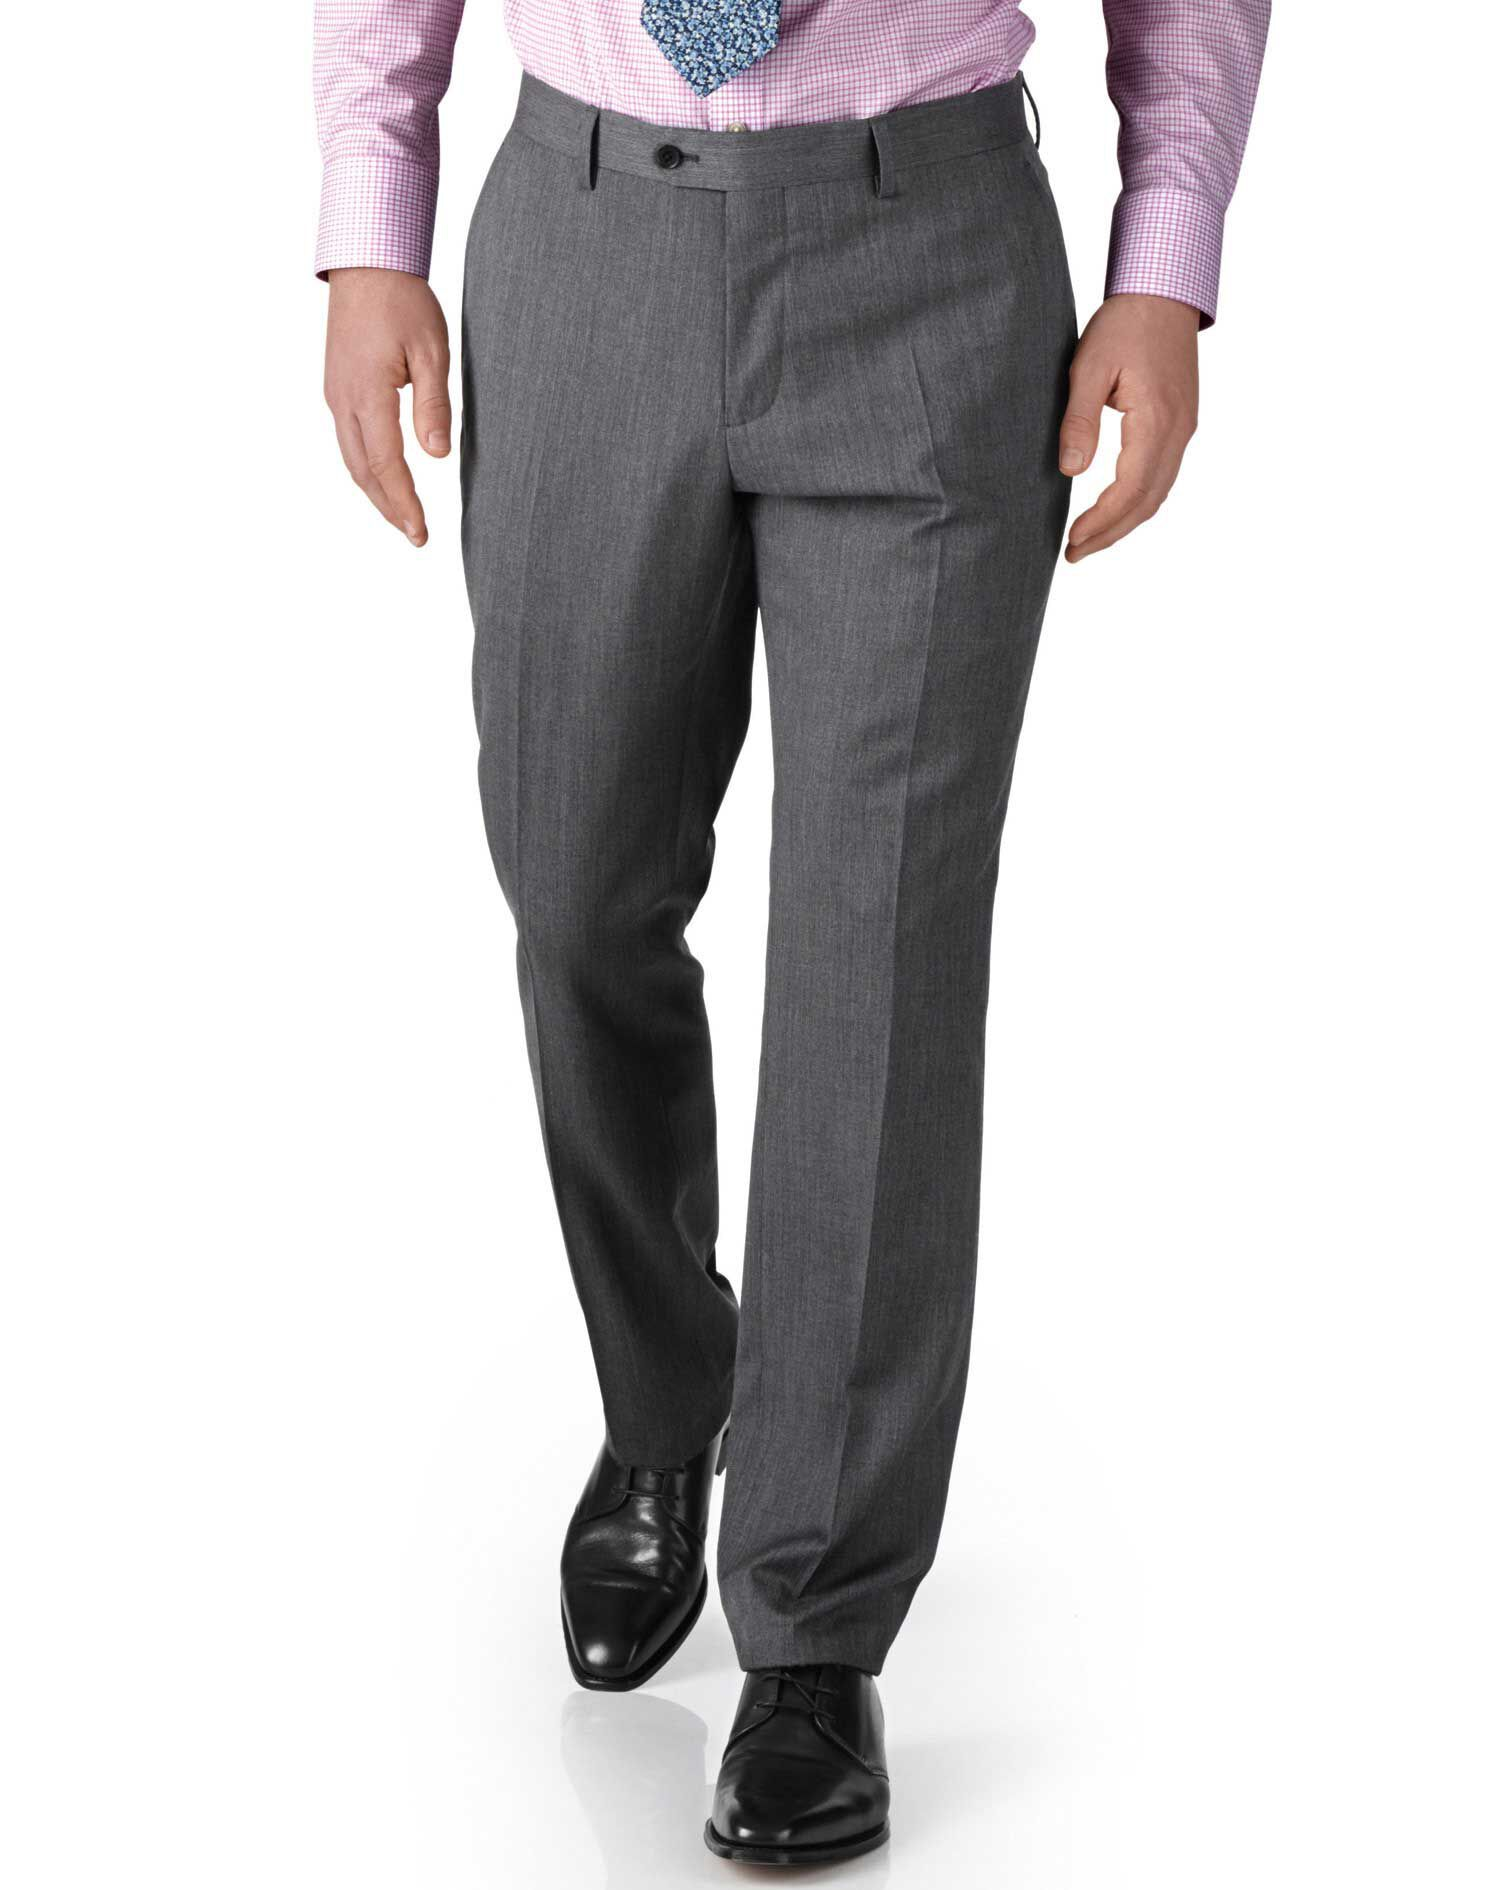 Silver Classic Fit Twill Business Suit Trousers Size W30 L38 by Charles Tyrwhitt